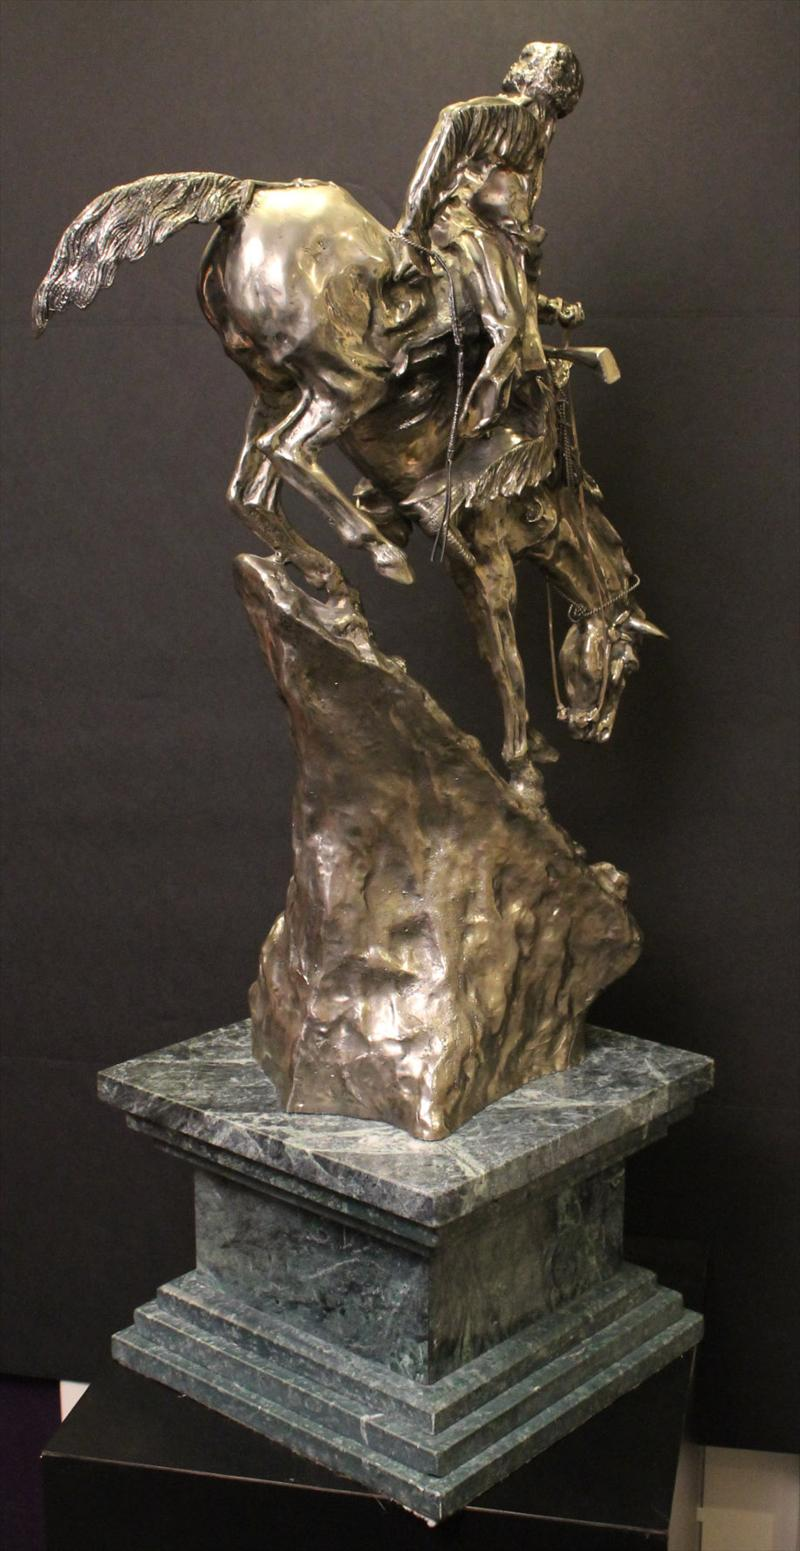 IGavel Auctions Cast 999 Silver Sculpture Mountain Man